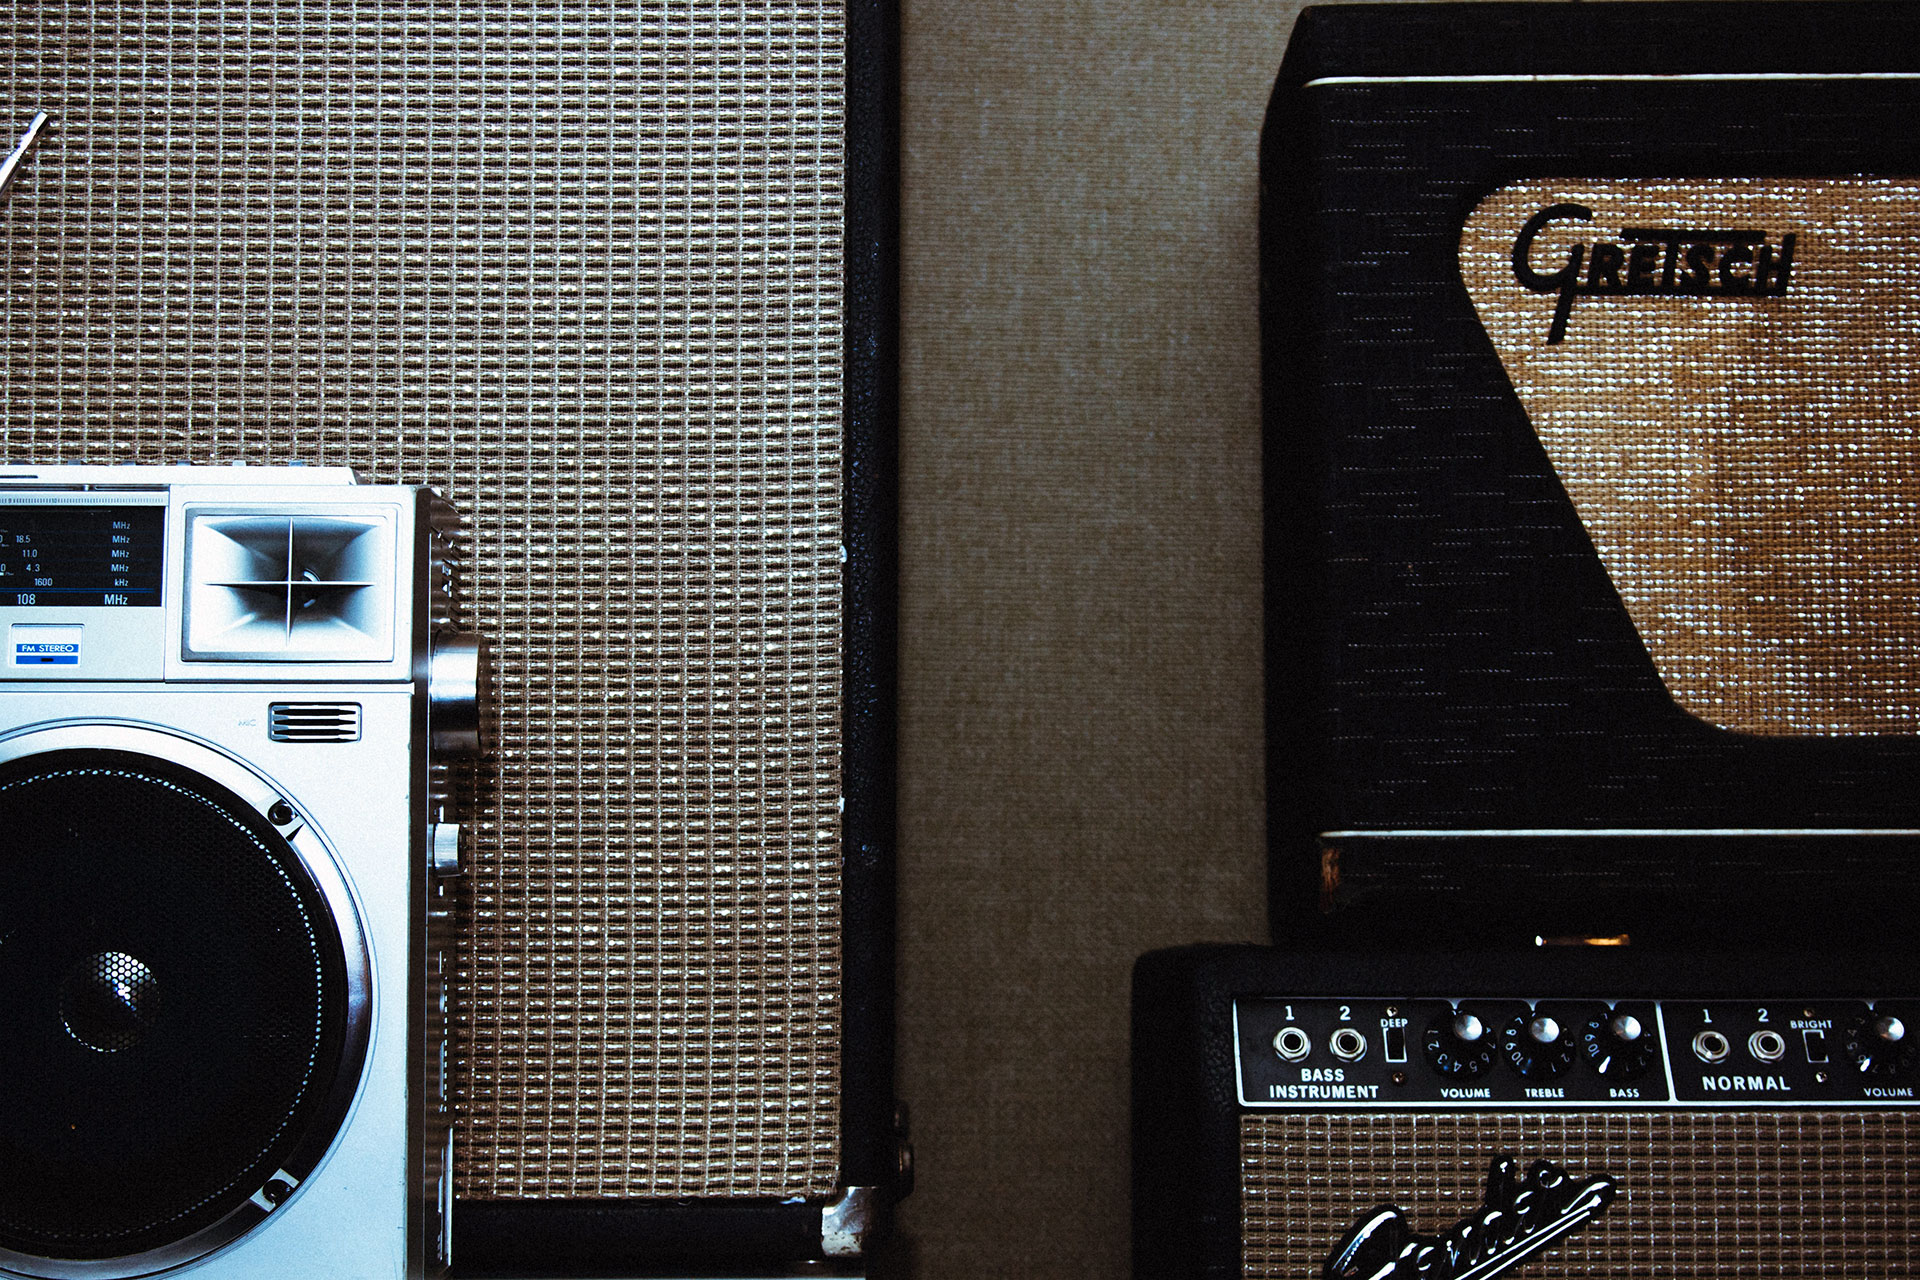 Fender Bassman Amp and Boombox